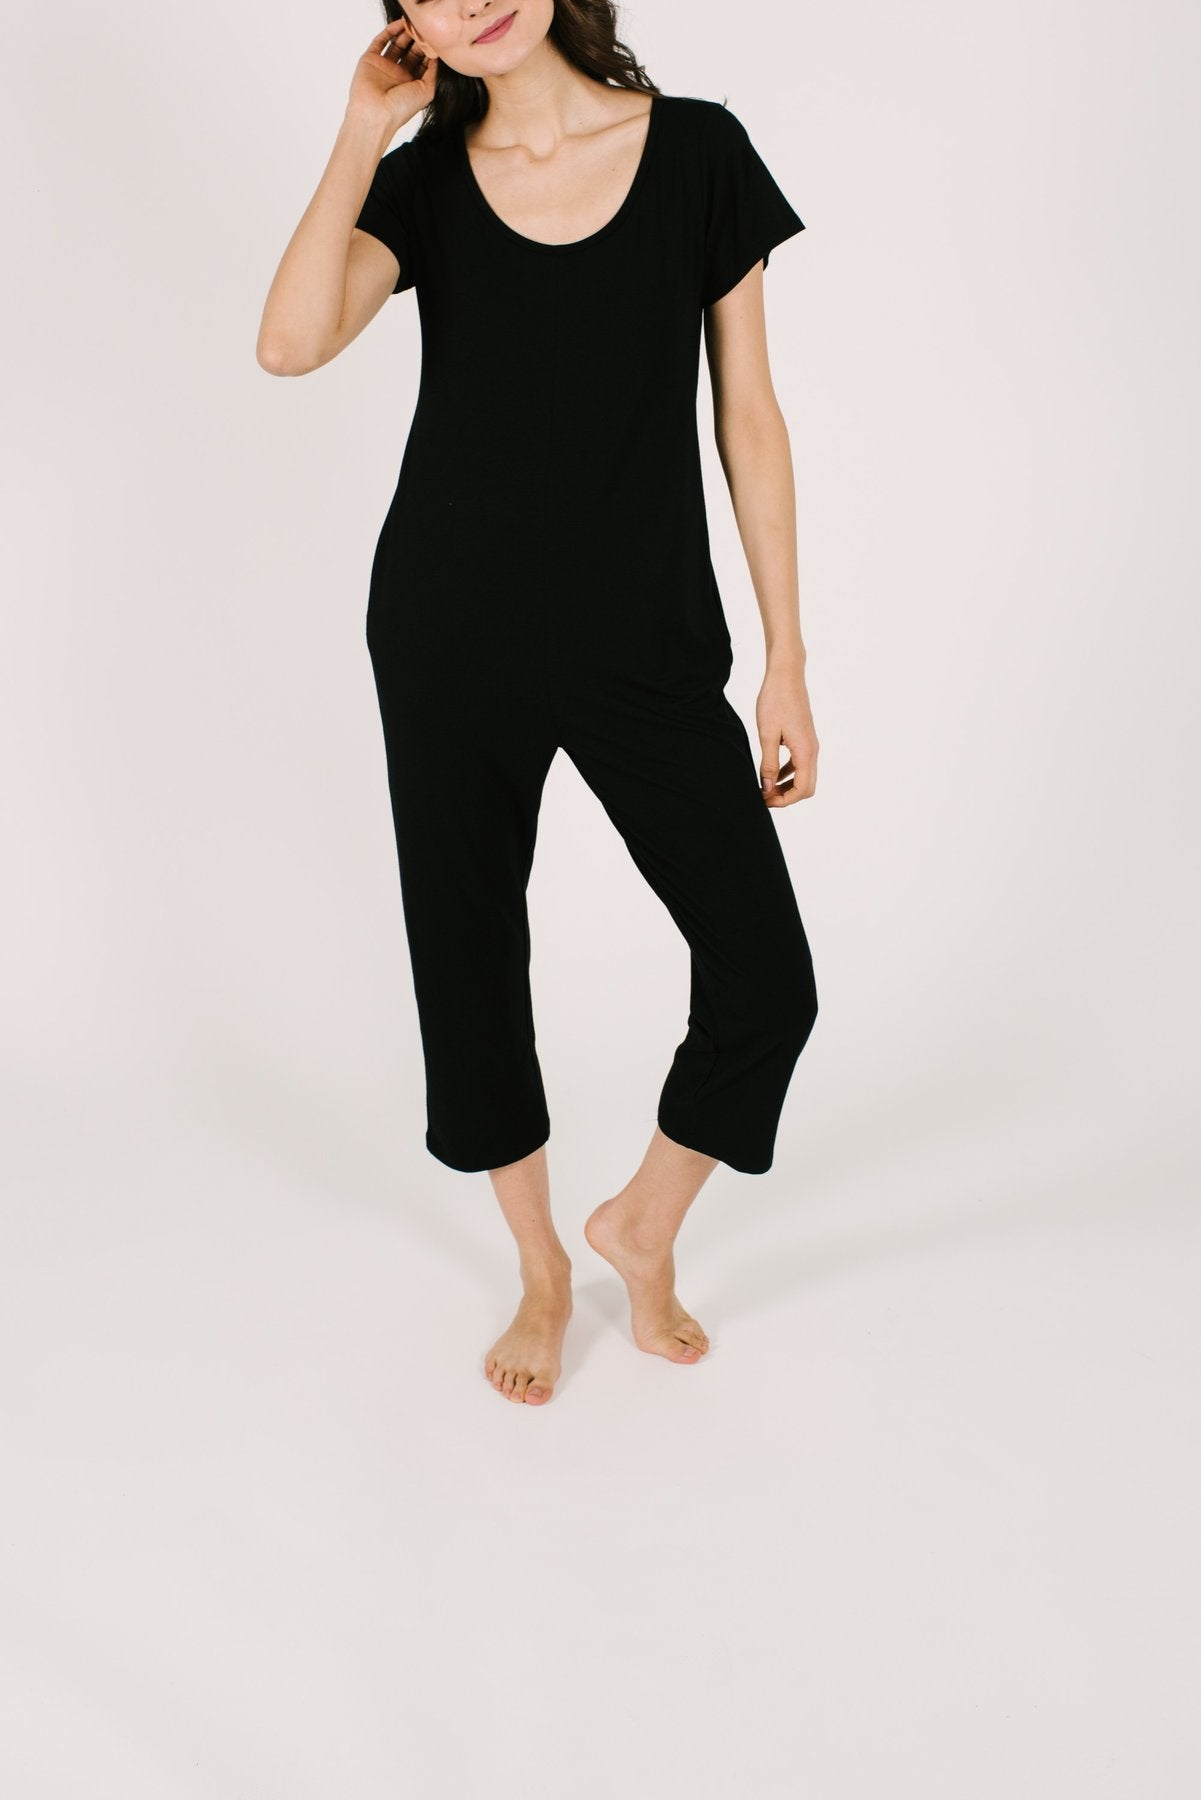 Smash+Tess Midnight Black Thursday Romper